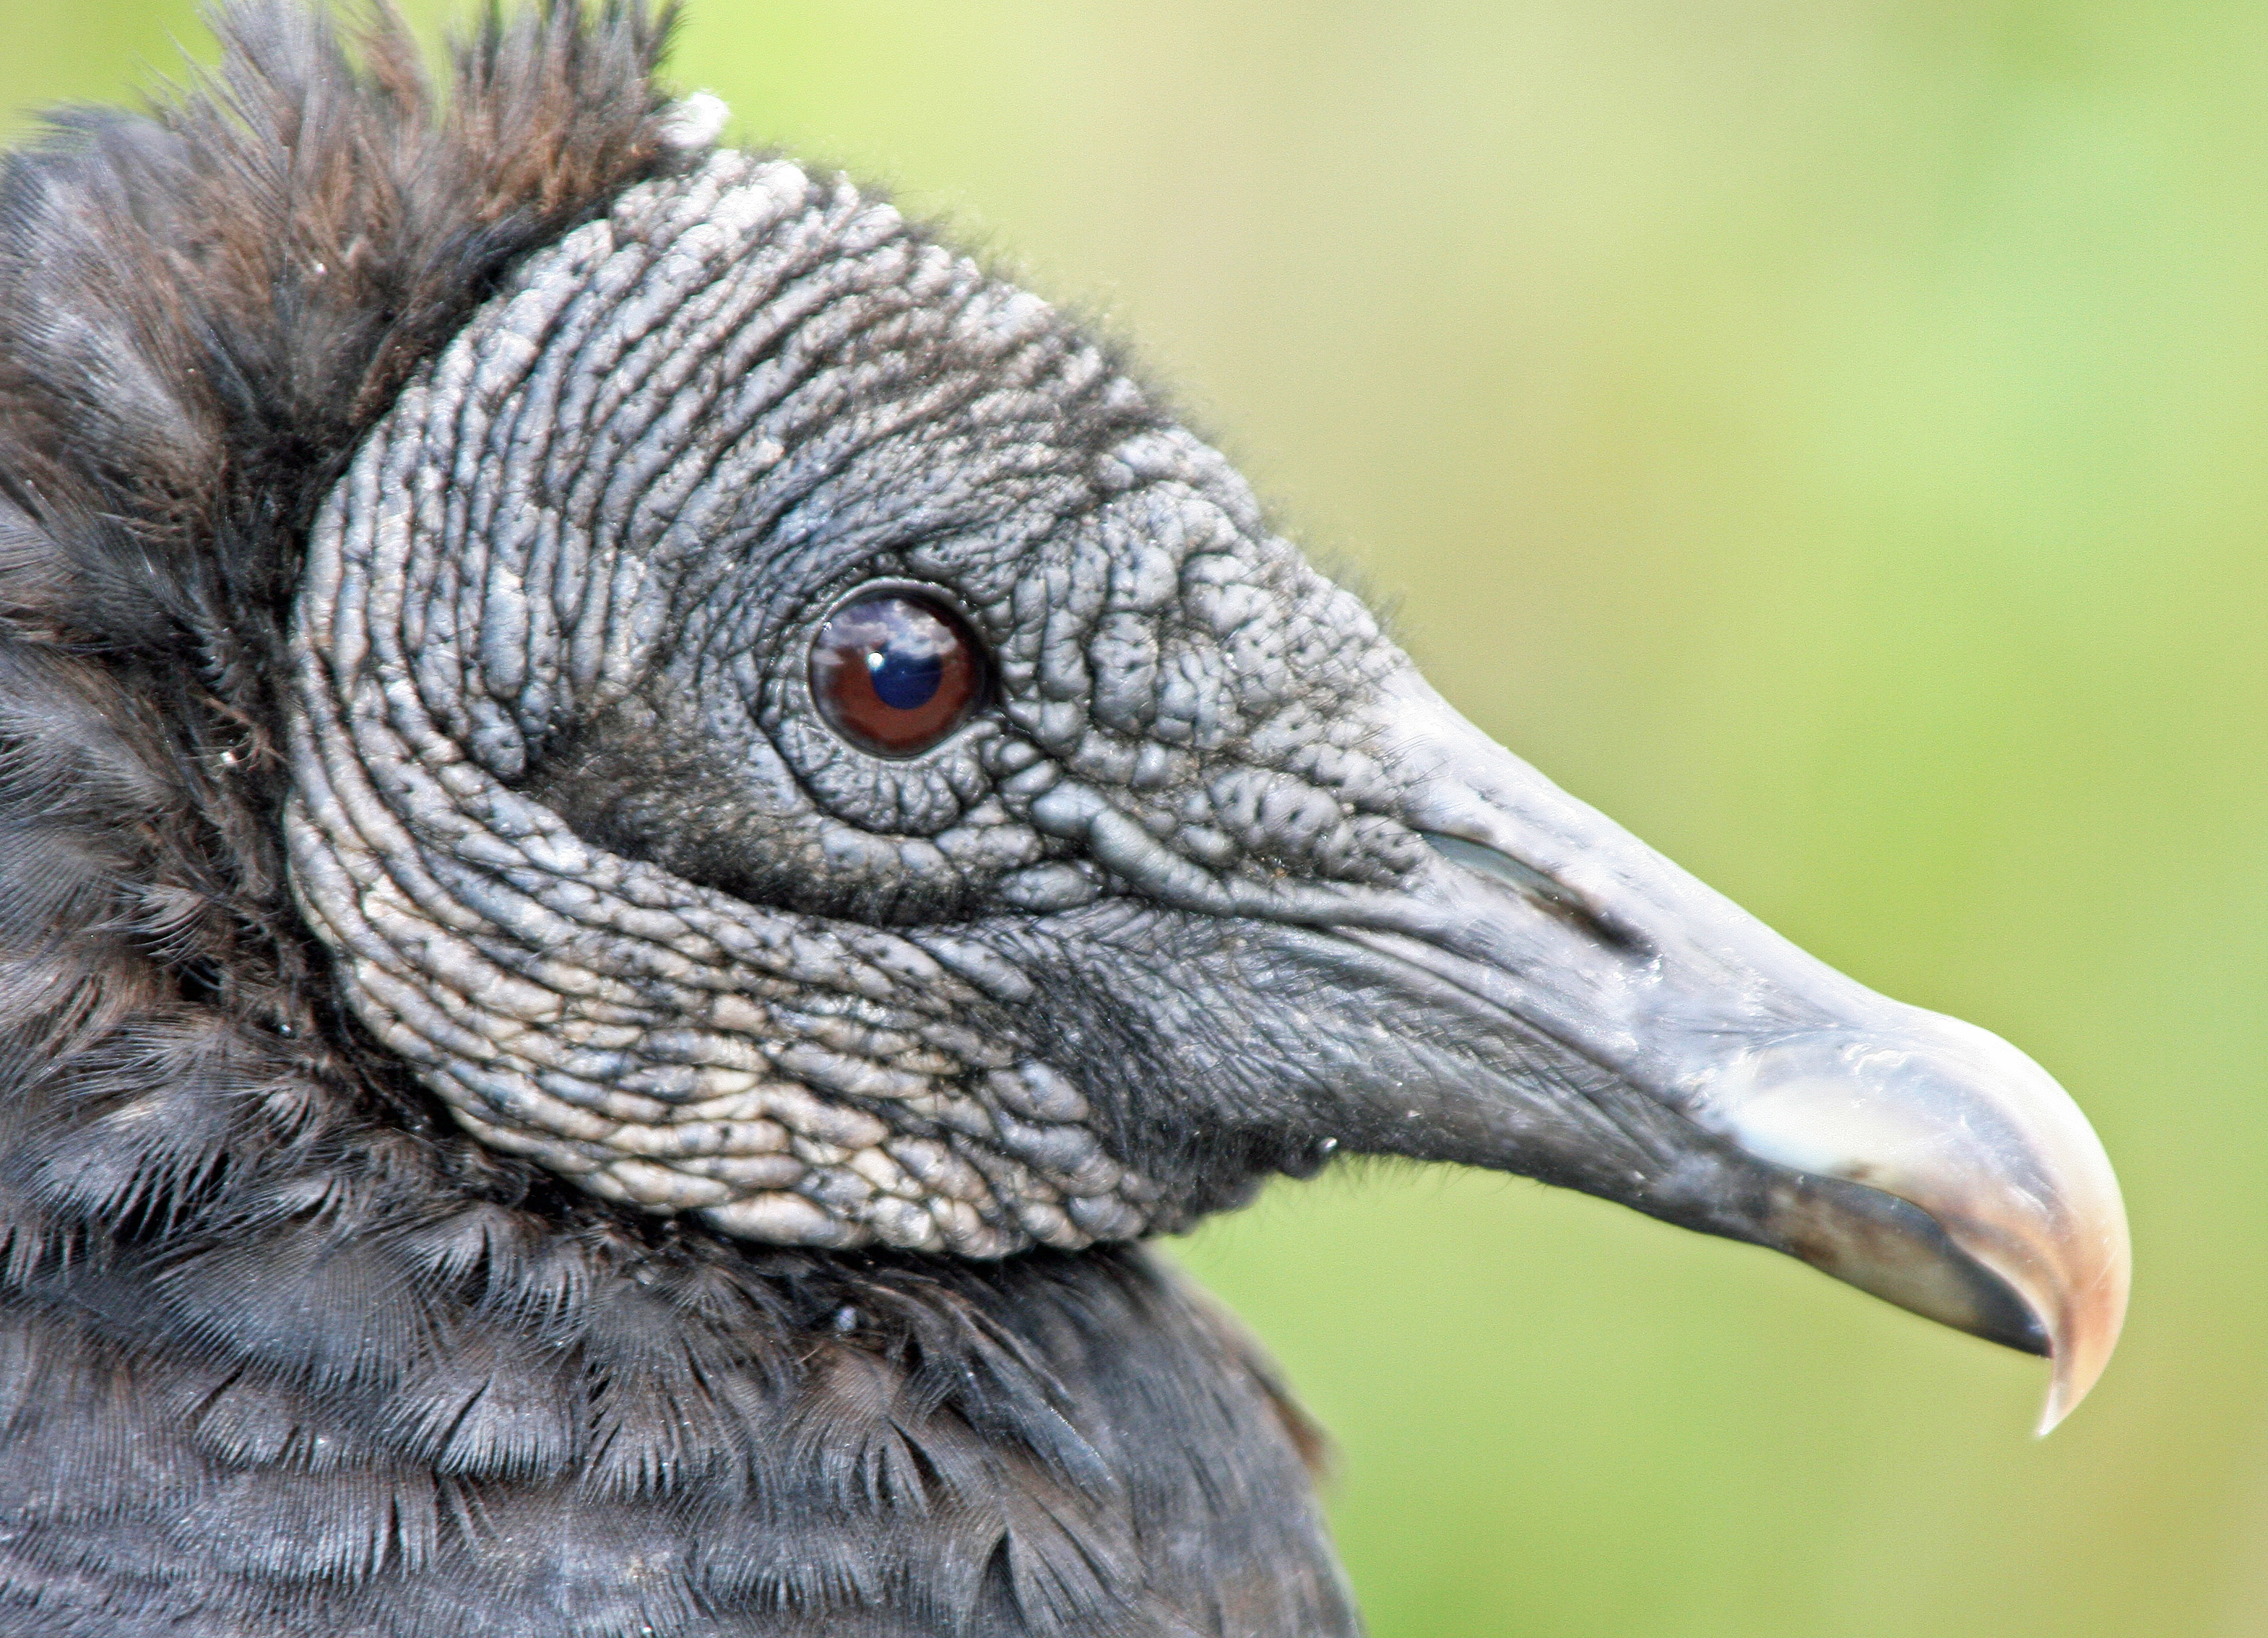 Photo of a Black Buzzard in Everglades National Park. Photo by Curtis Mekemson.